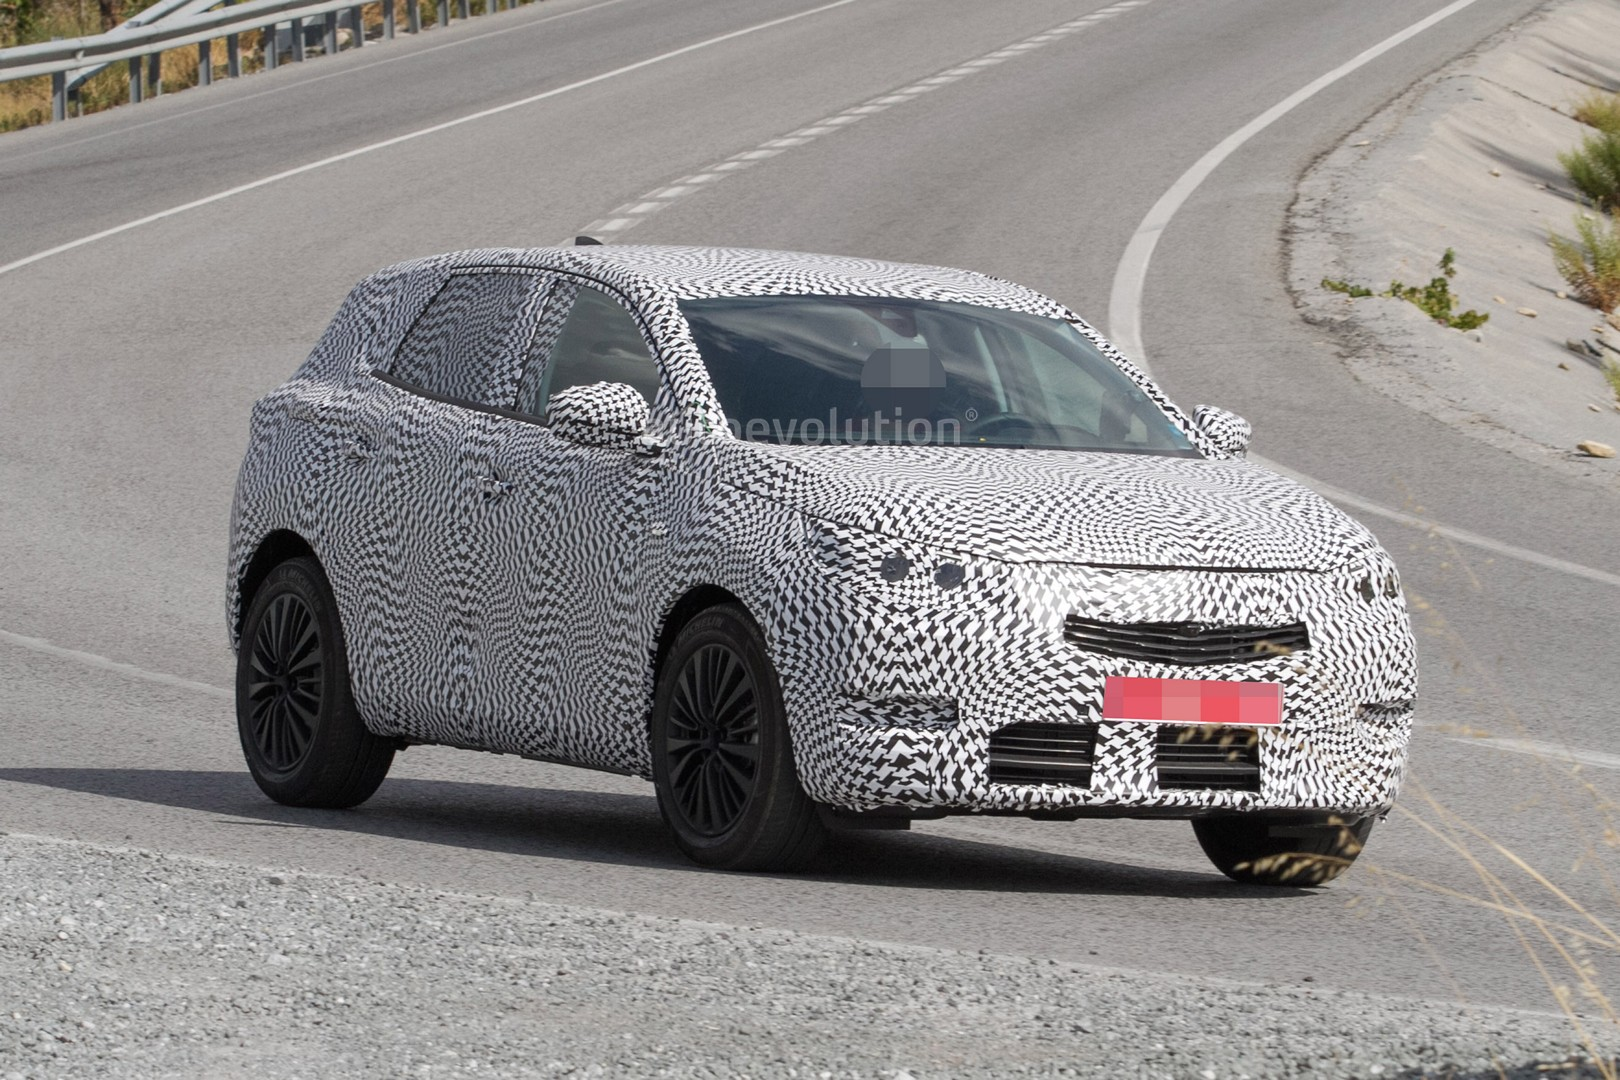 Tesla Update >> Spyshots: 2018 Peugeot 2008 Spy Photo Debut or Opel C-SUV ...